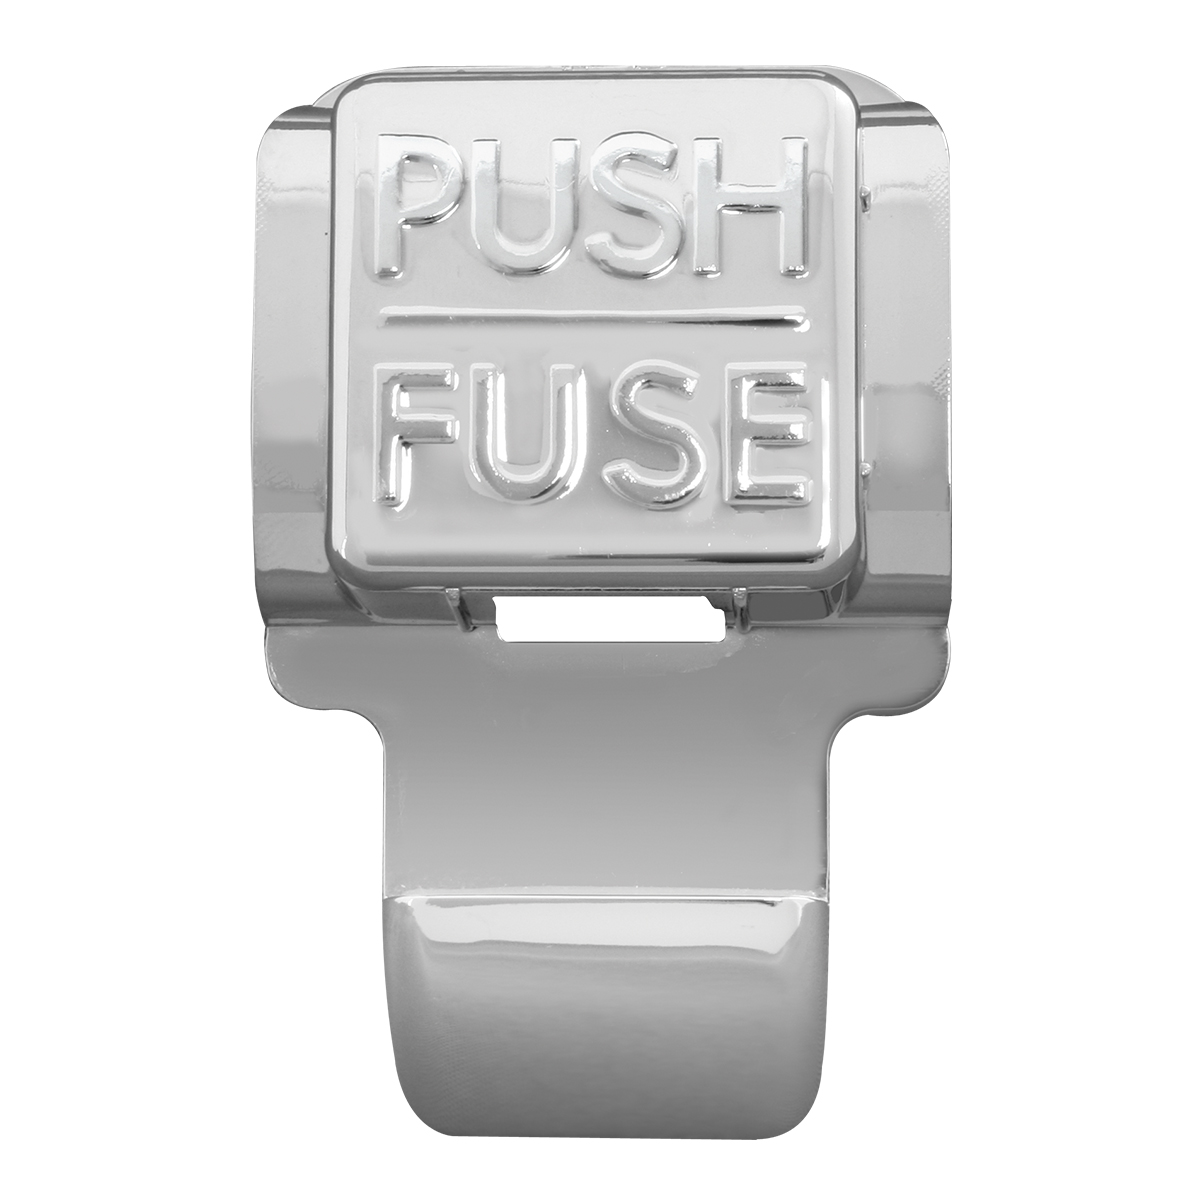 #67814 Fuse Box Push Button for Freightliner